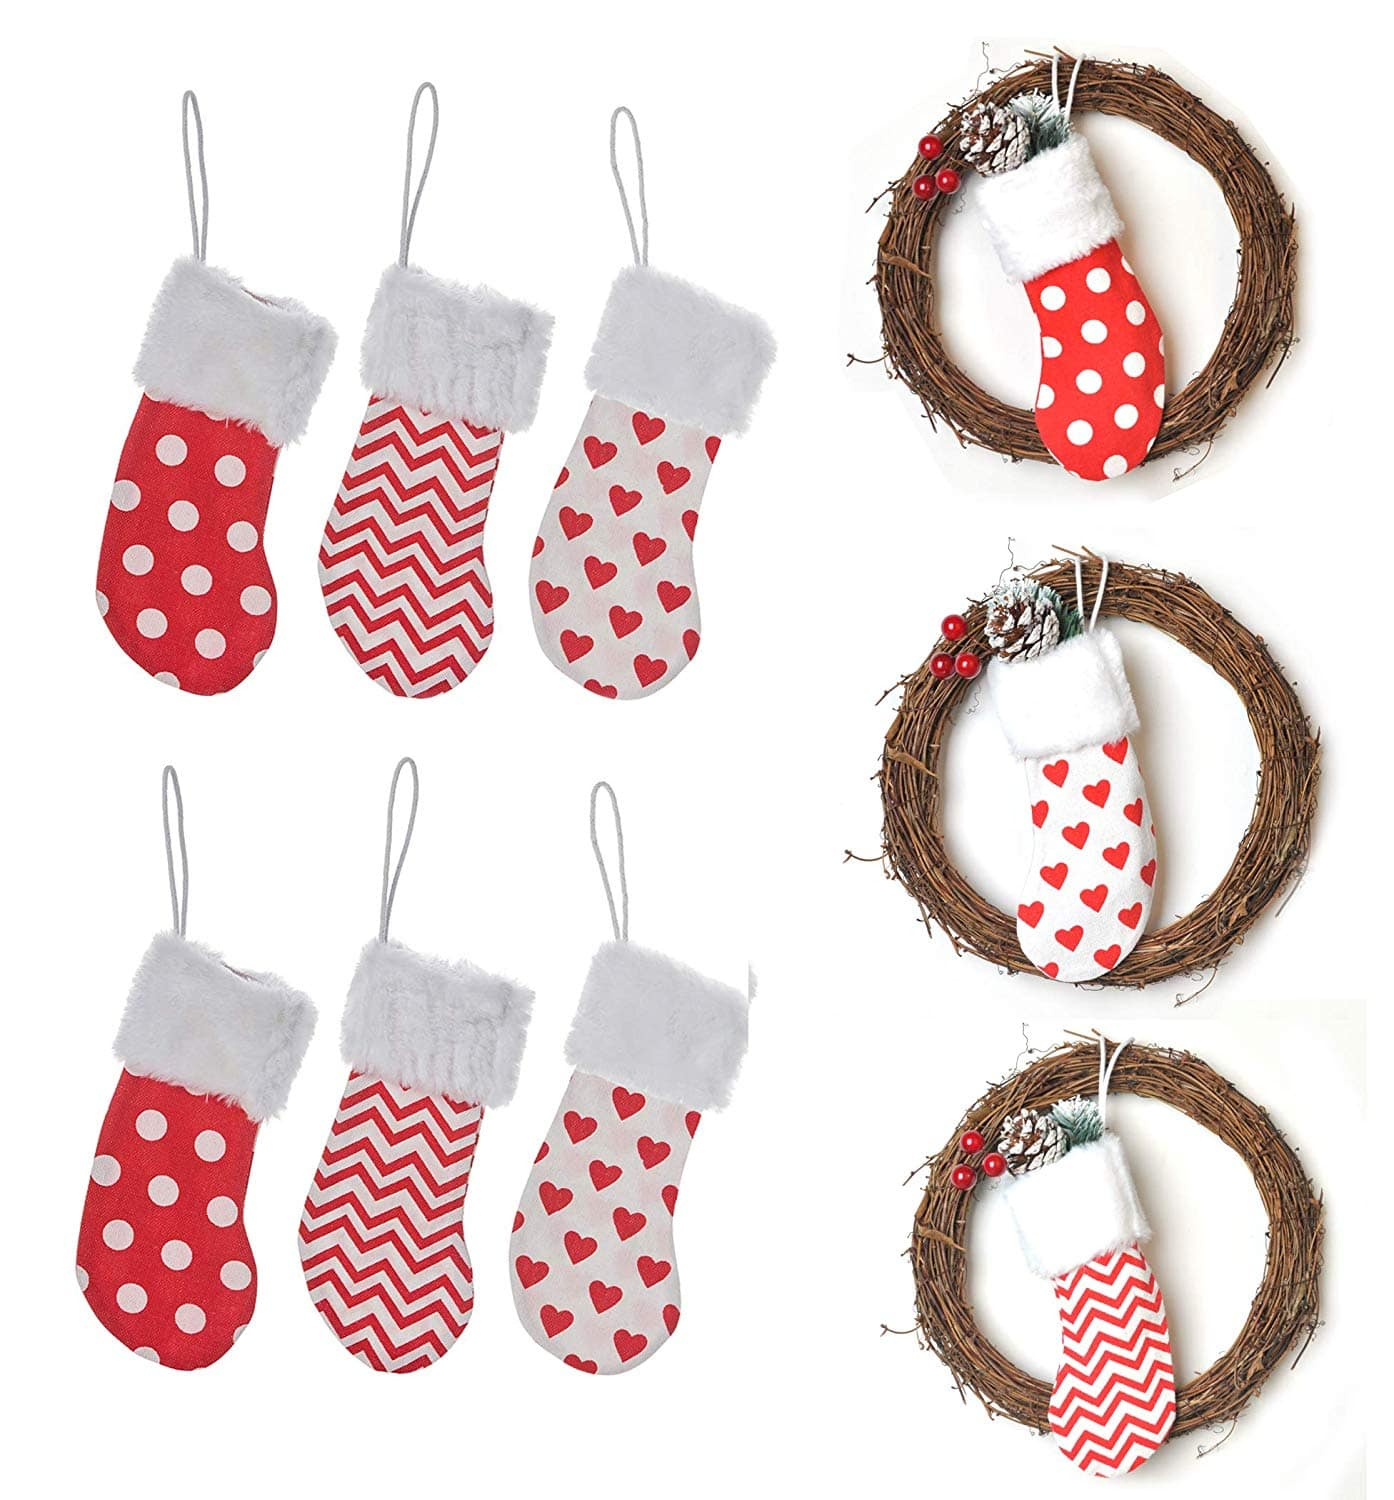 Cute Small and Big Christmas Stockings $6.99 - Slickdeals.net